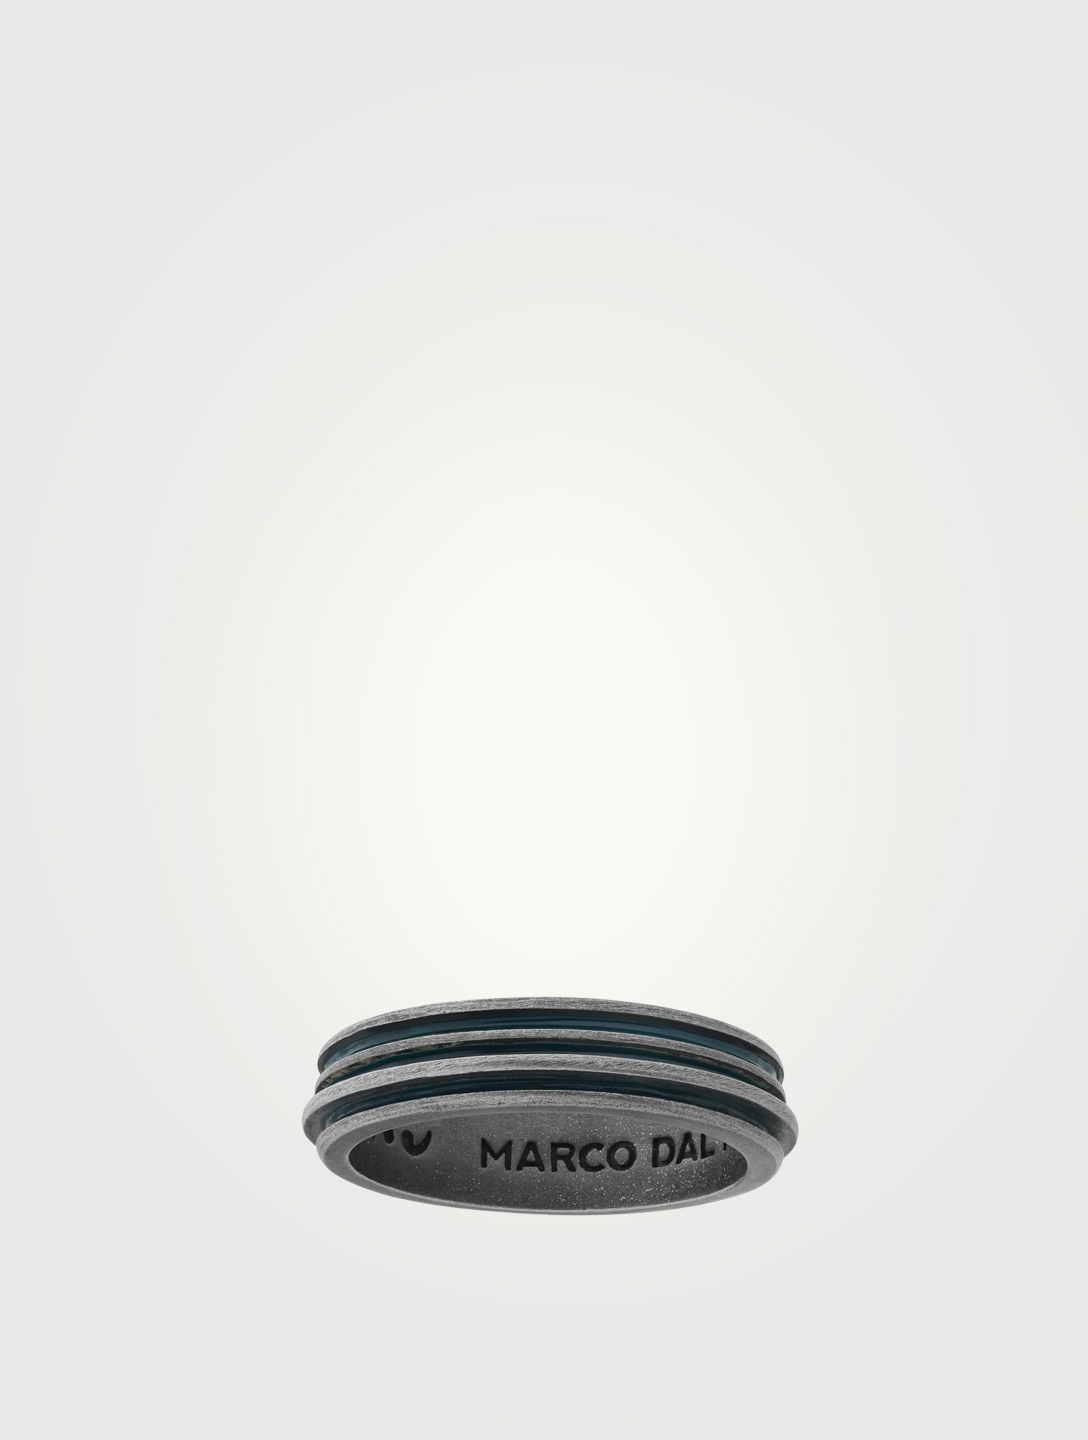 MARCO DAL MASO Acies Single Oxidized Silver Ring Men's Black